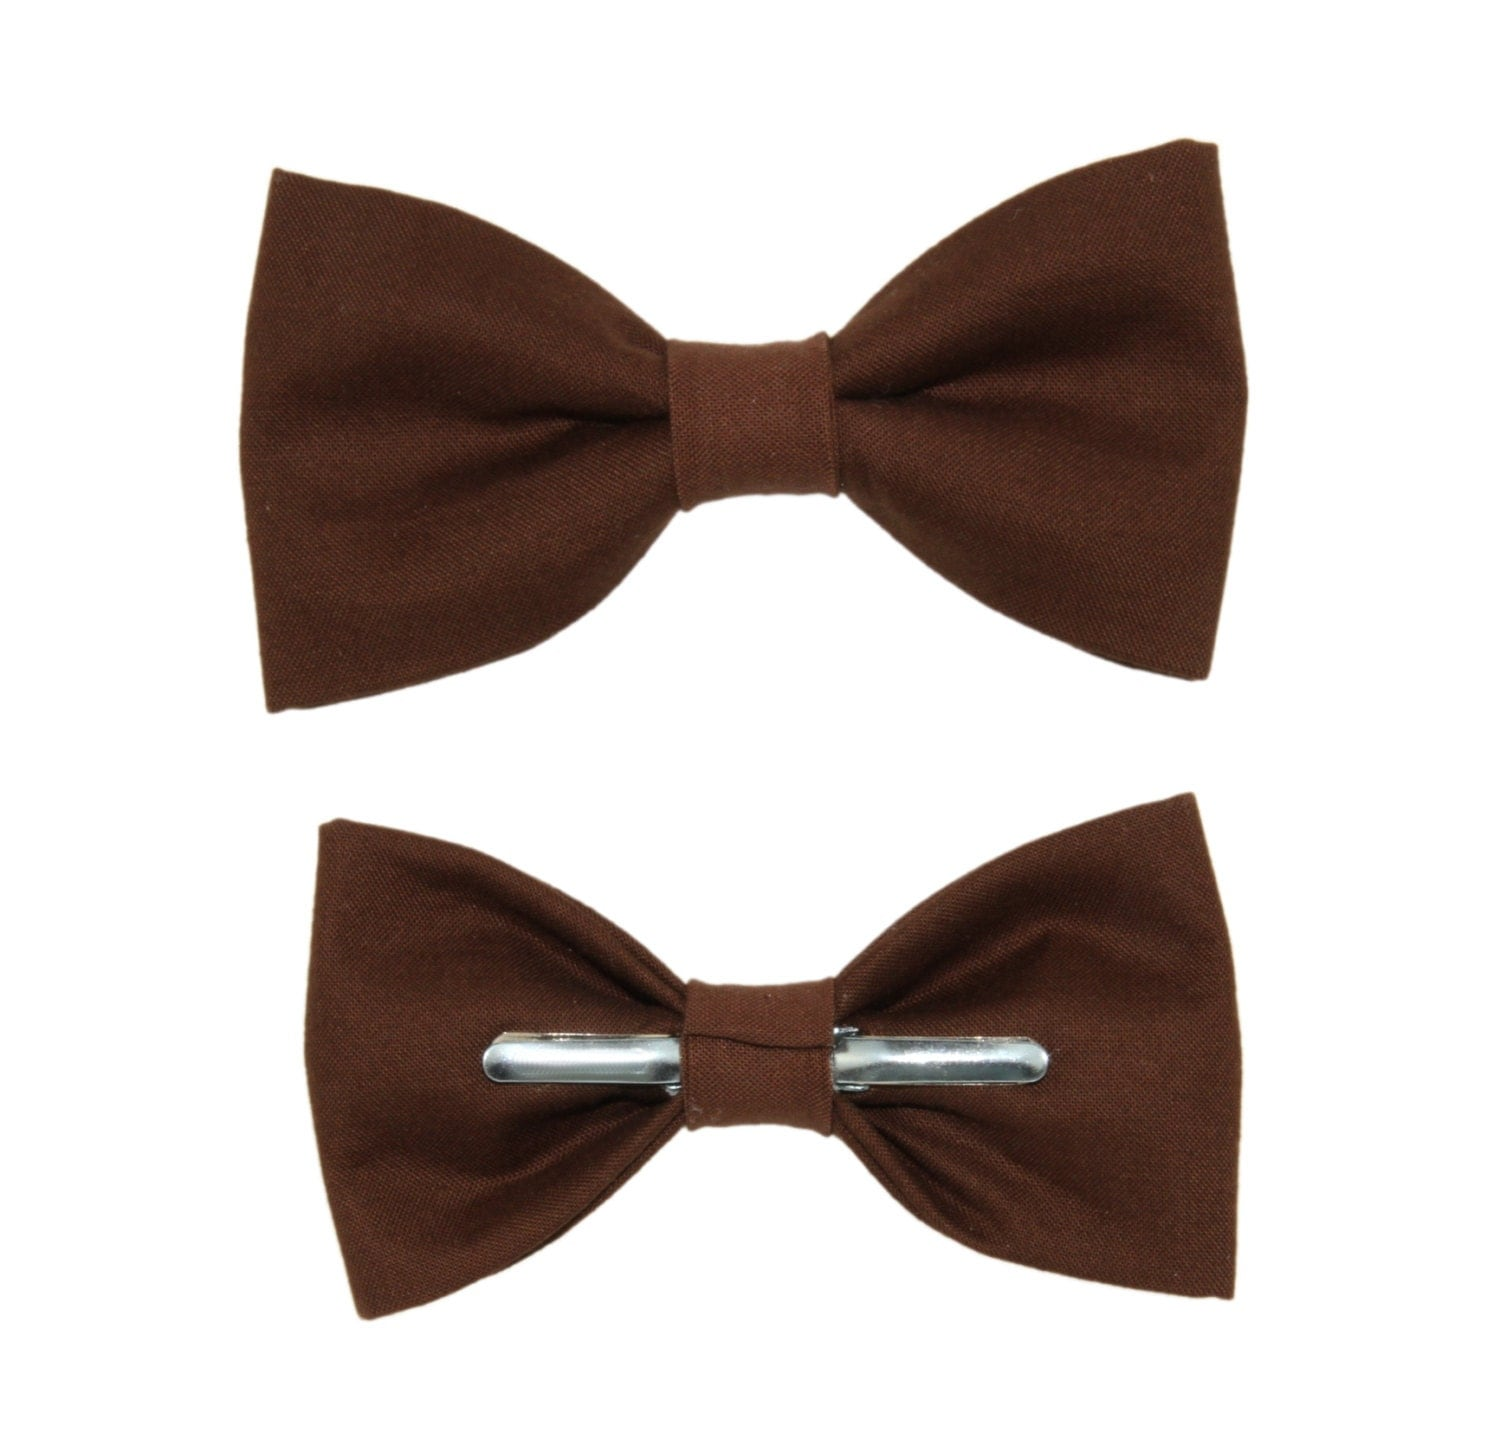 Chocolate Brown Clip On Cotton Bow Tie Bowtie Choose